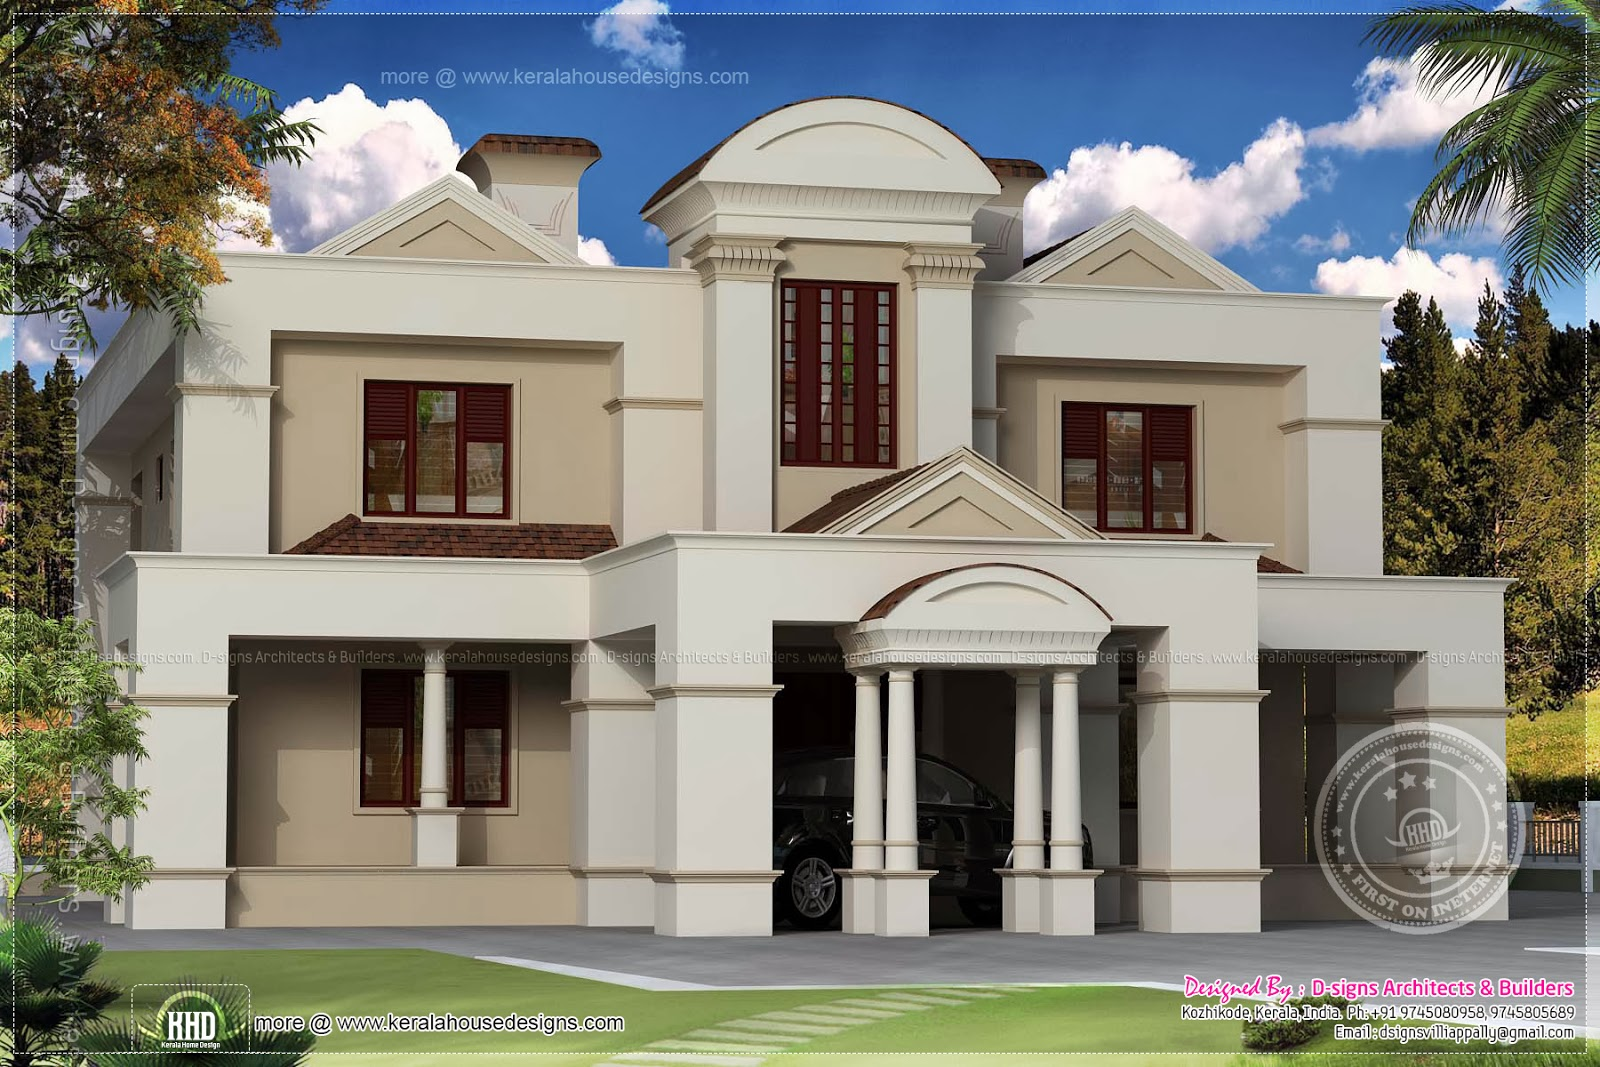 Traditional old house renovation plan to colonial style ...